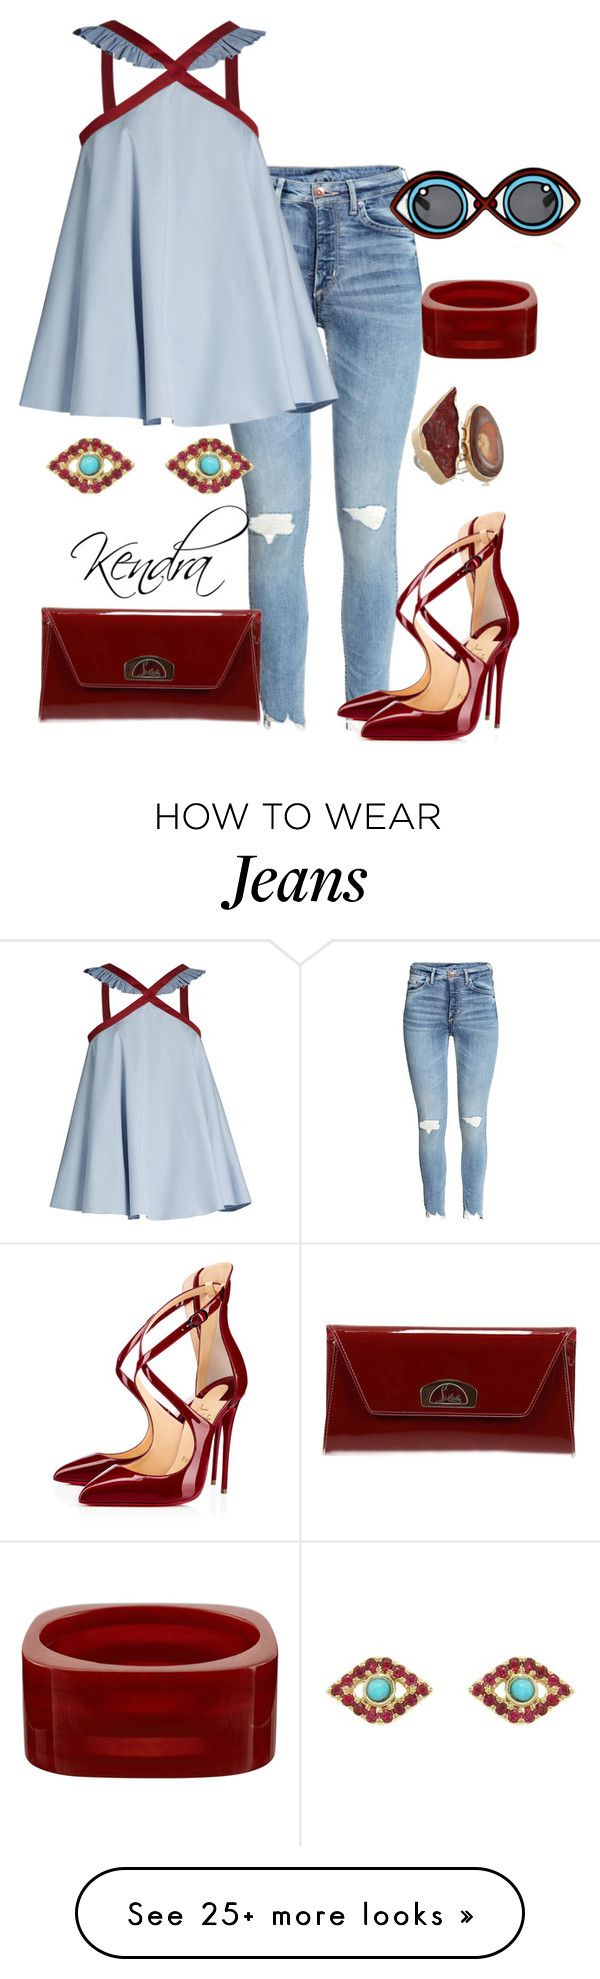 """""""A Little Ruffled"""" by kmariestyles on Polyvore featuring Anna October, Melissa Joy Manning, Christian Louboutin and Sydney Evan"""